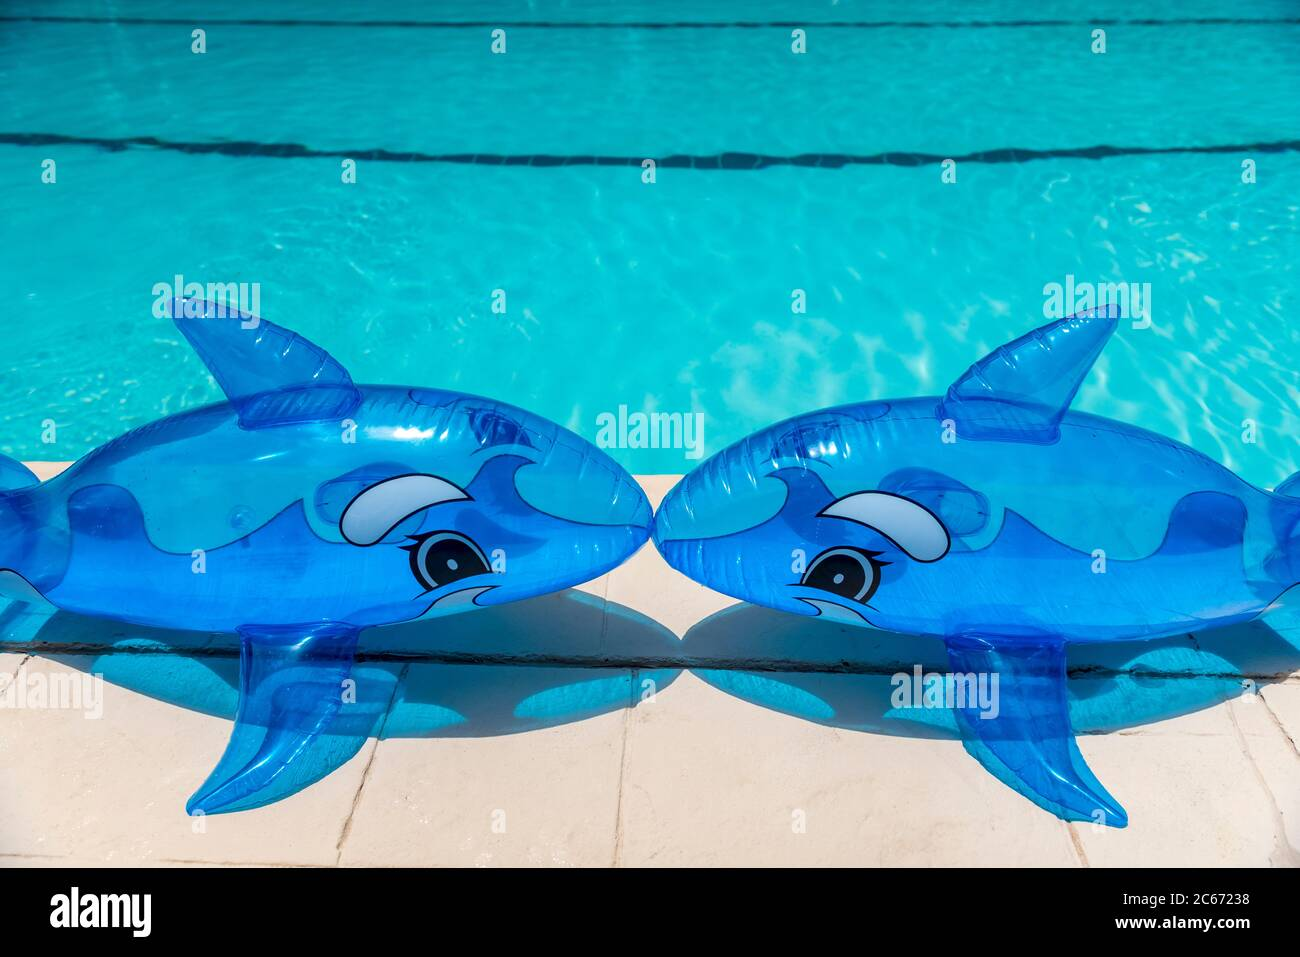 Inflatable pool toys on the deck of a poll with the water in the background. Stock Photo